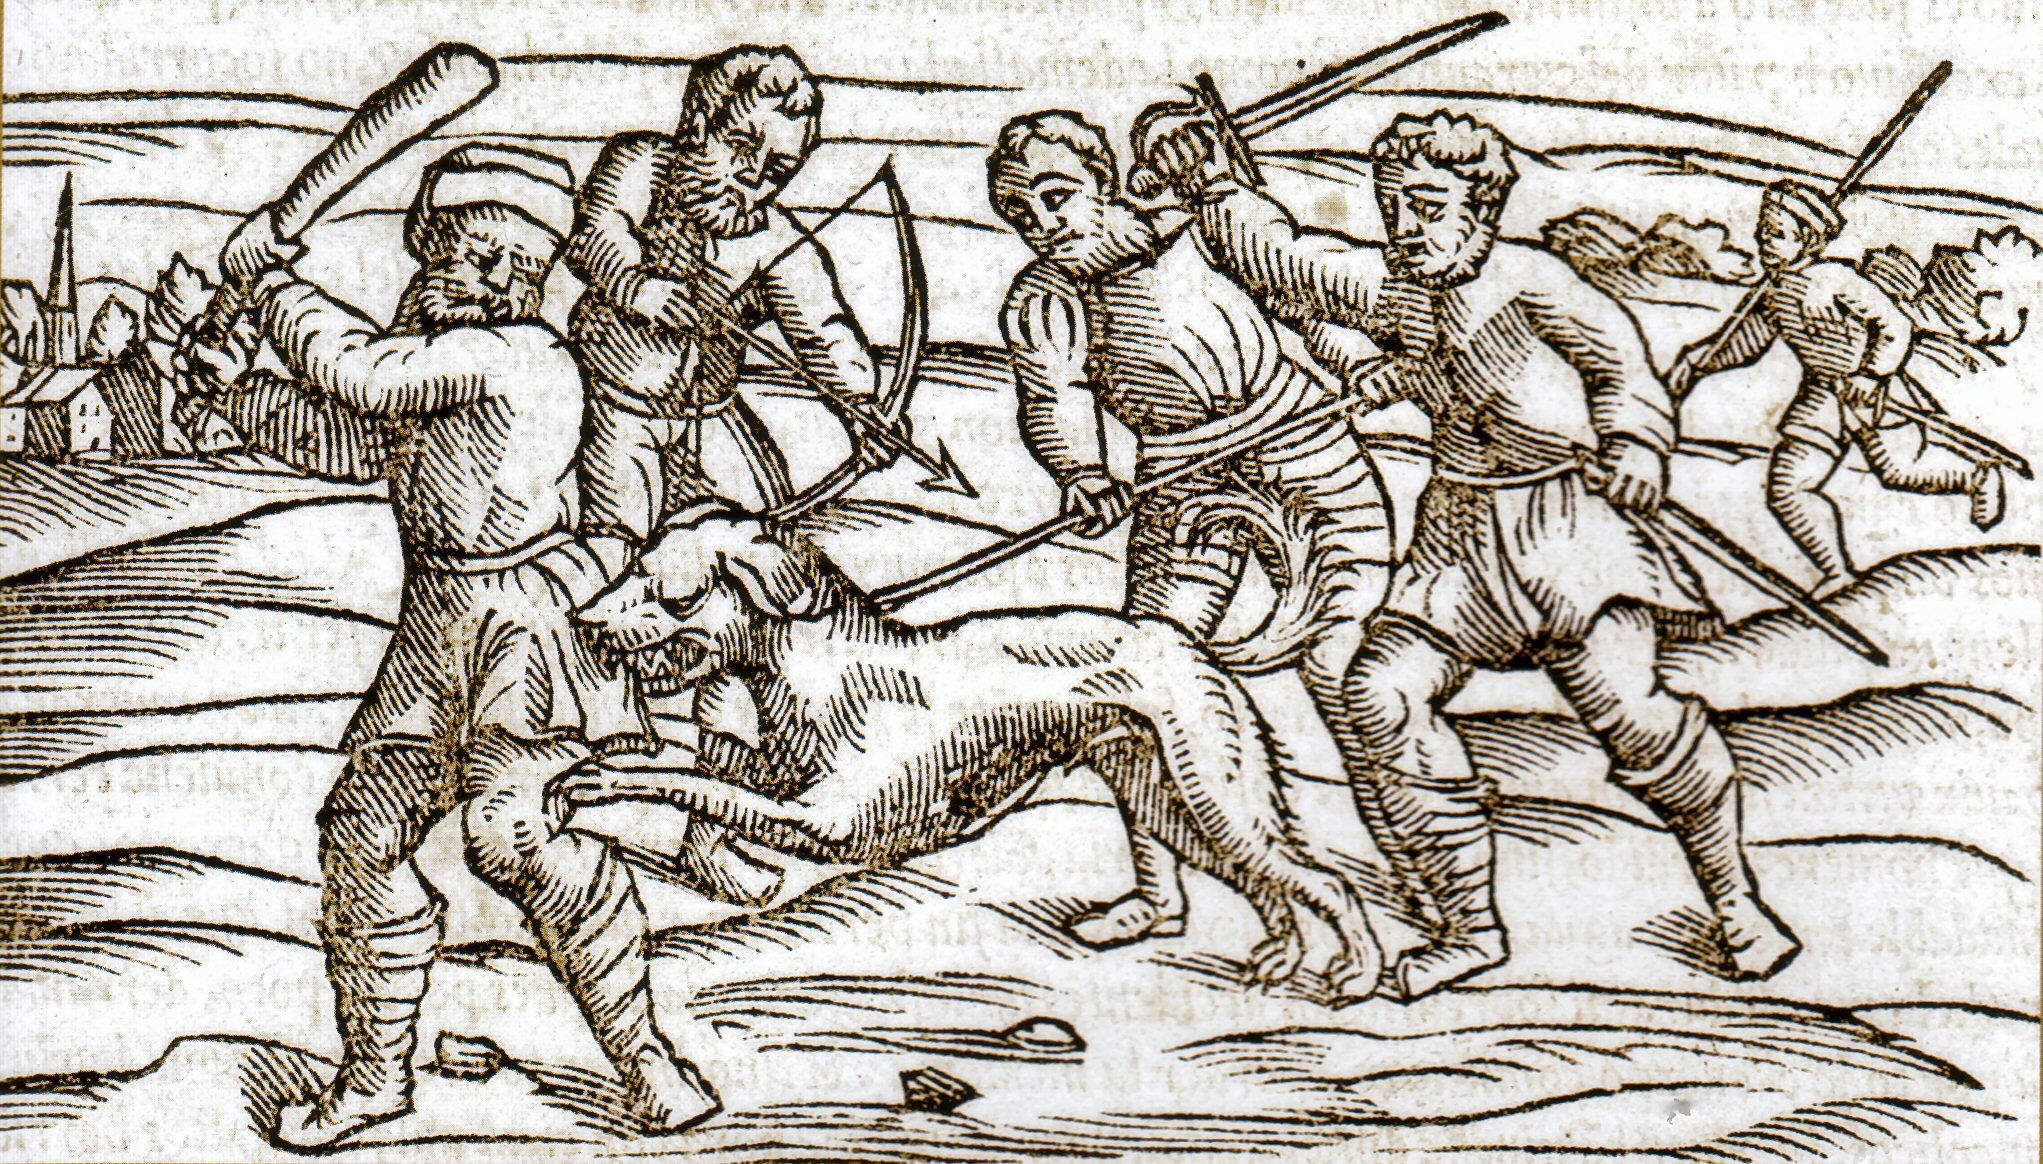 A woodcut from the Middle Ages showing a rabid dog.